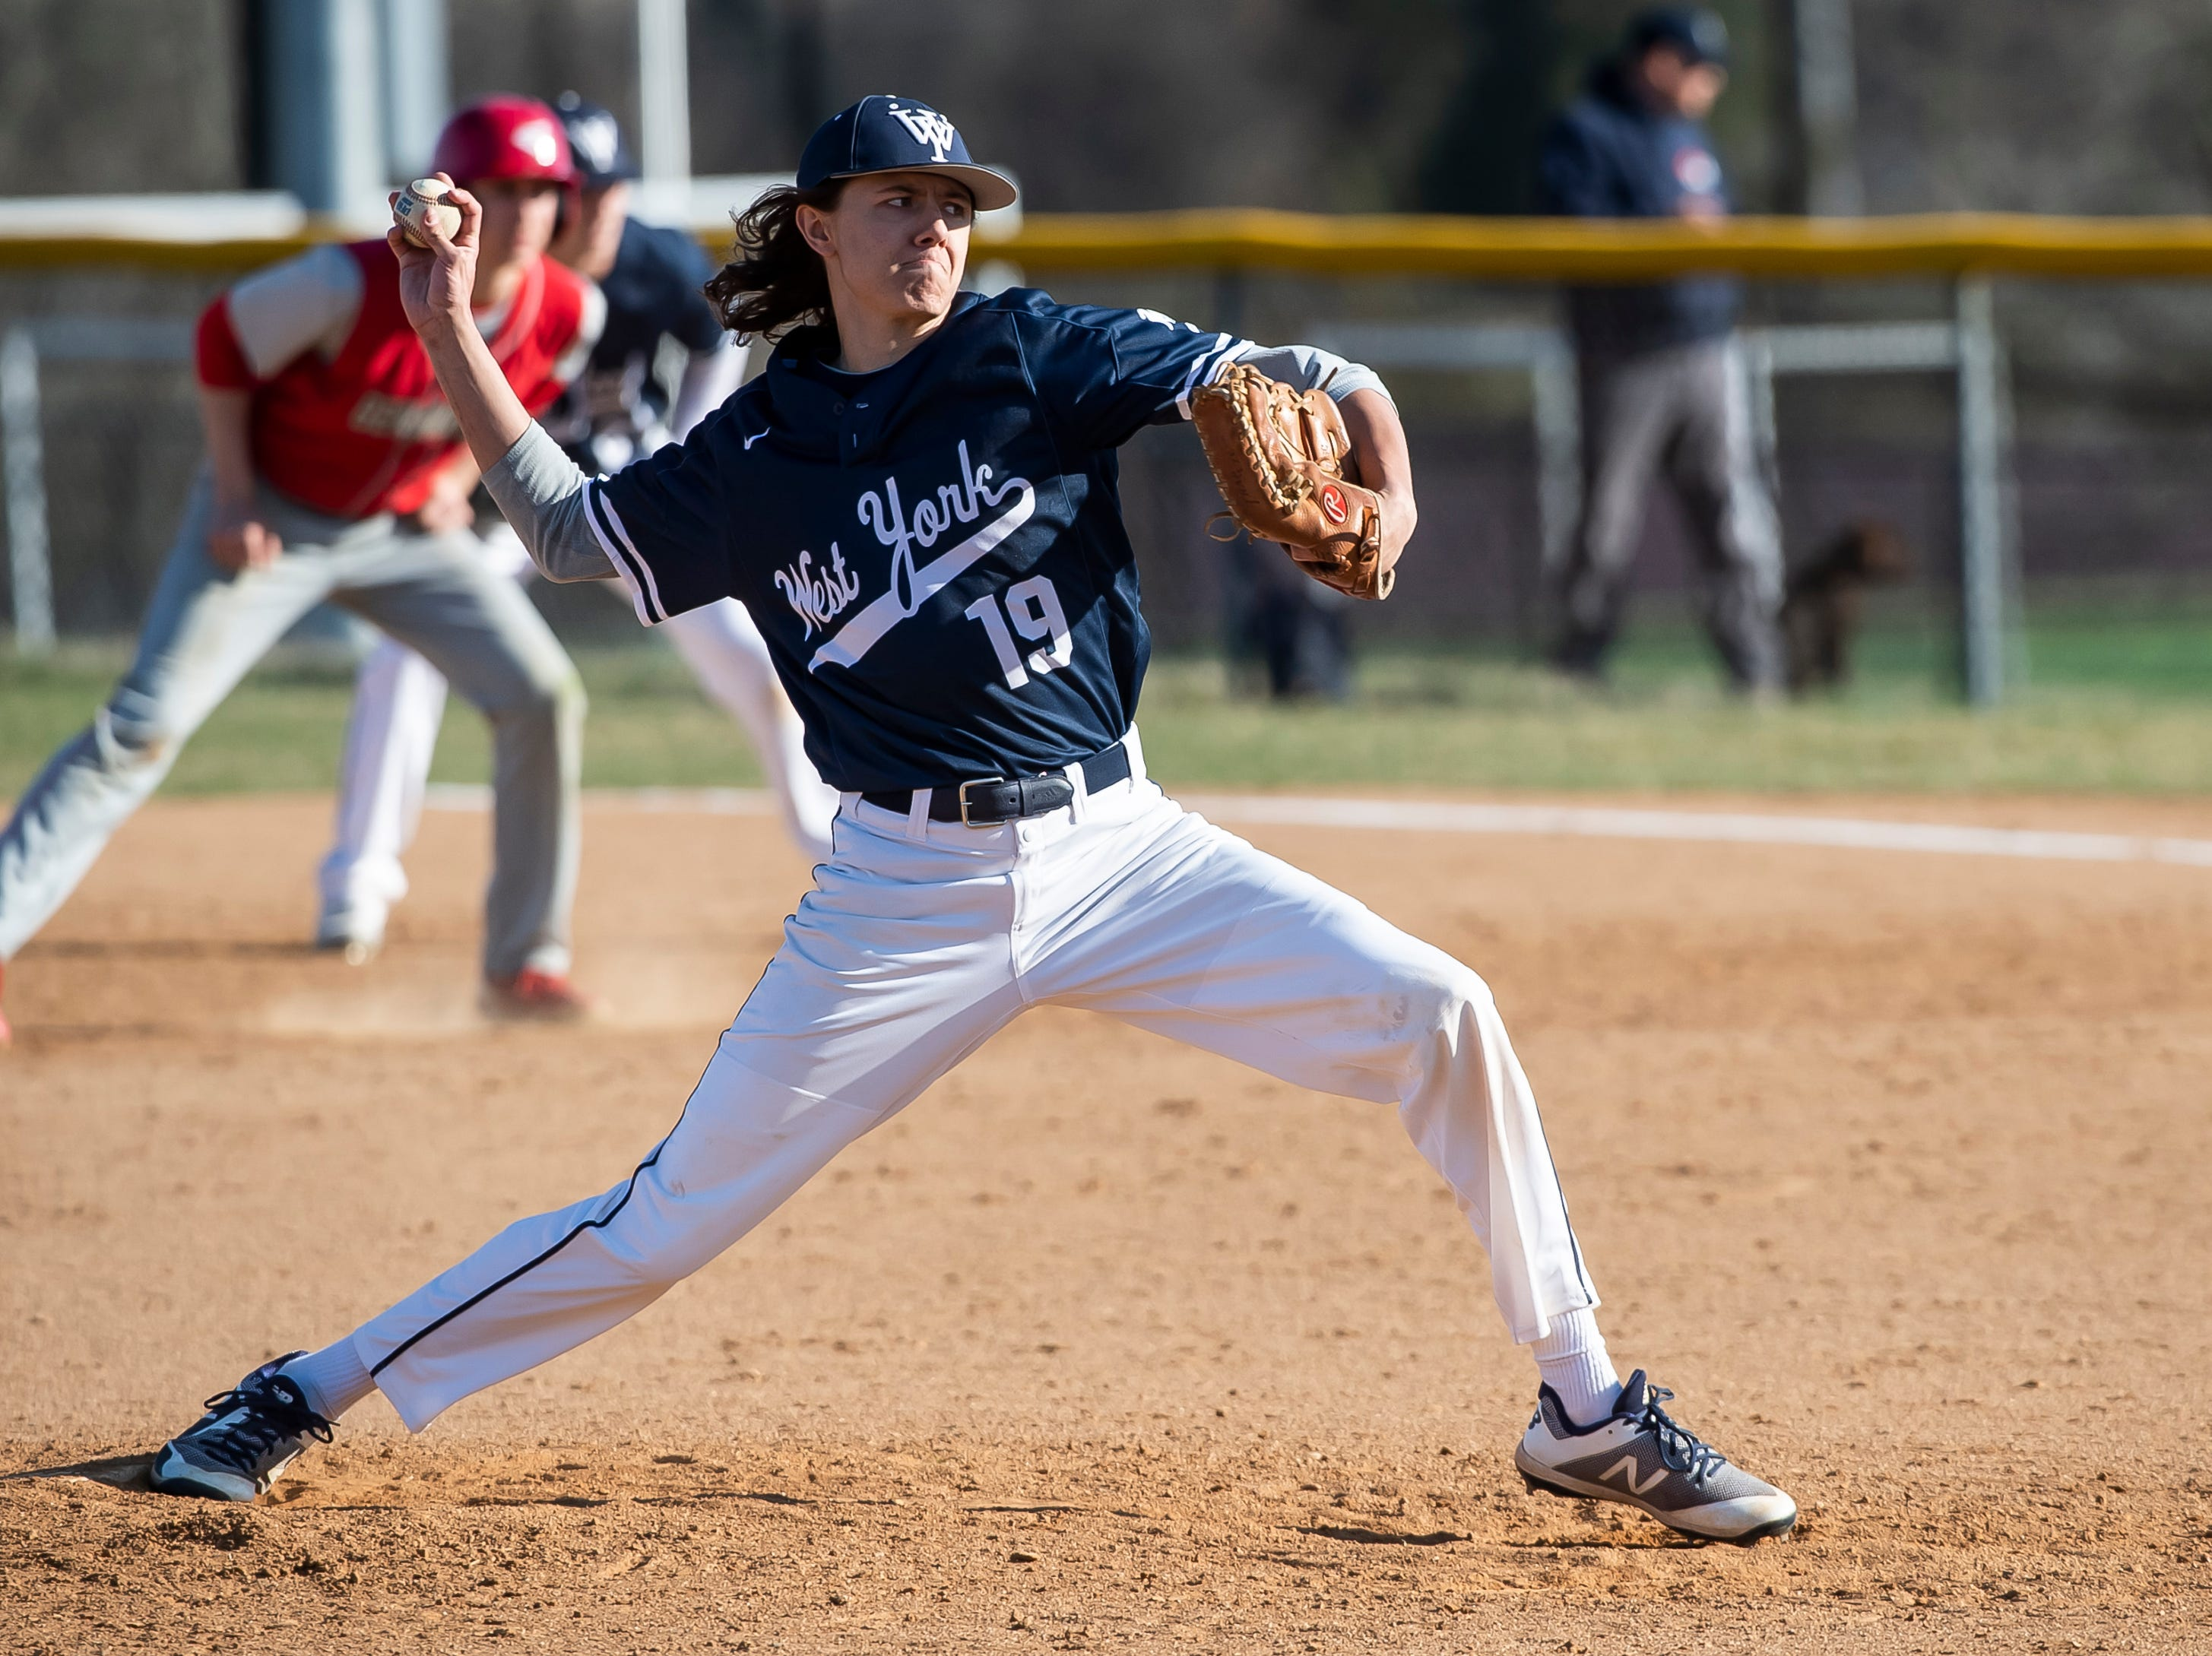 West York relief pitcher Christian Fletcher throws to Bermudian Springs during a YAIAA baseball game on Wednesday, April 3, 2019. The Bulldogs won 14-11.